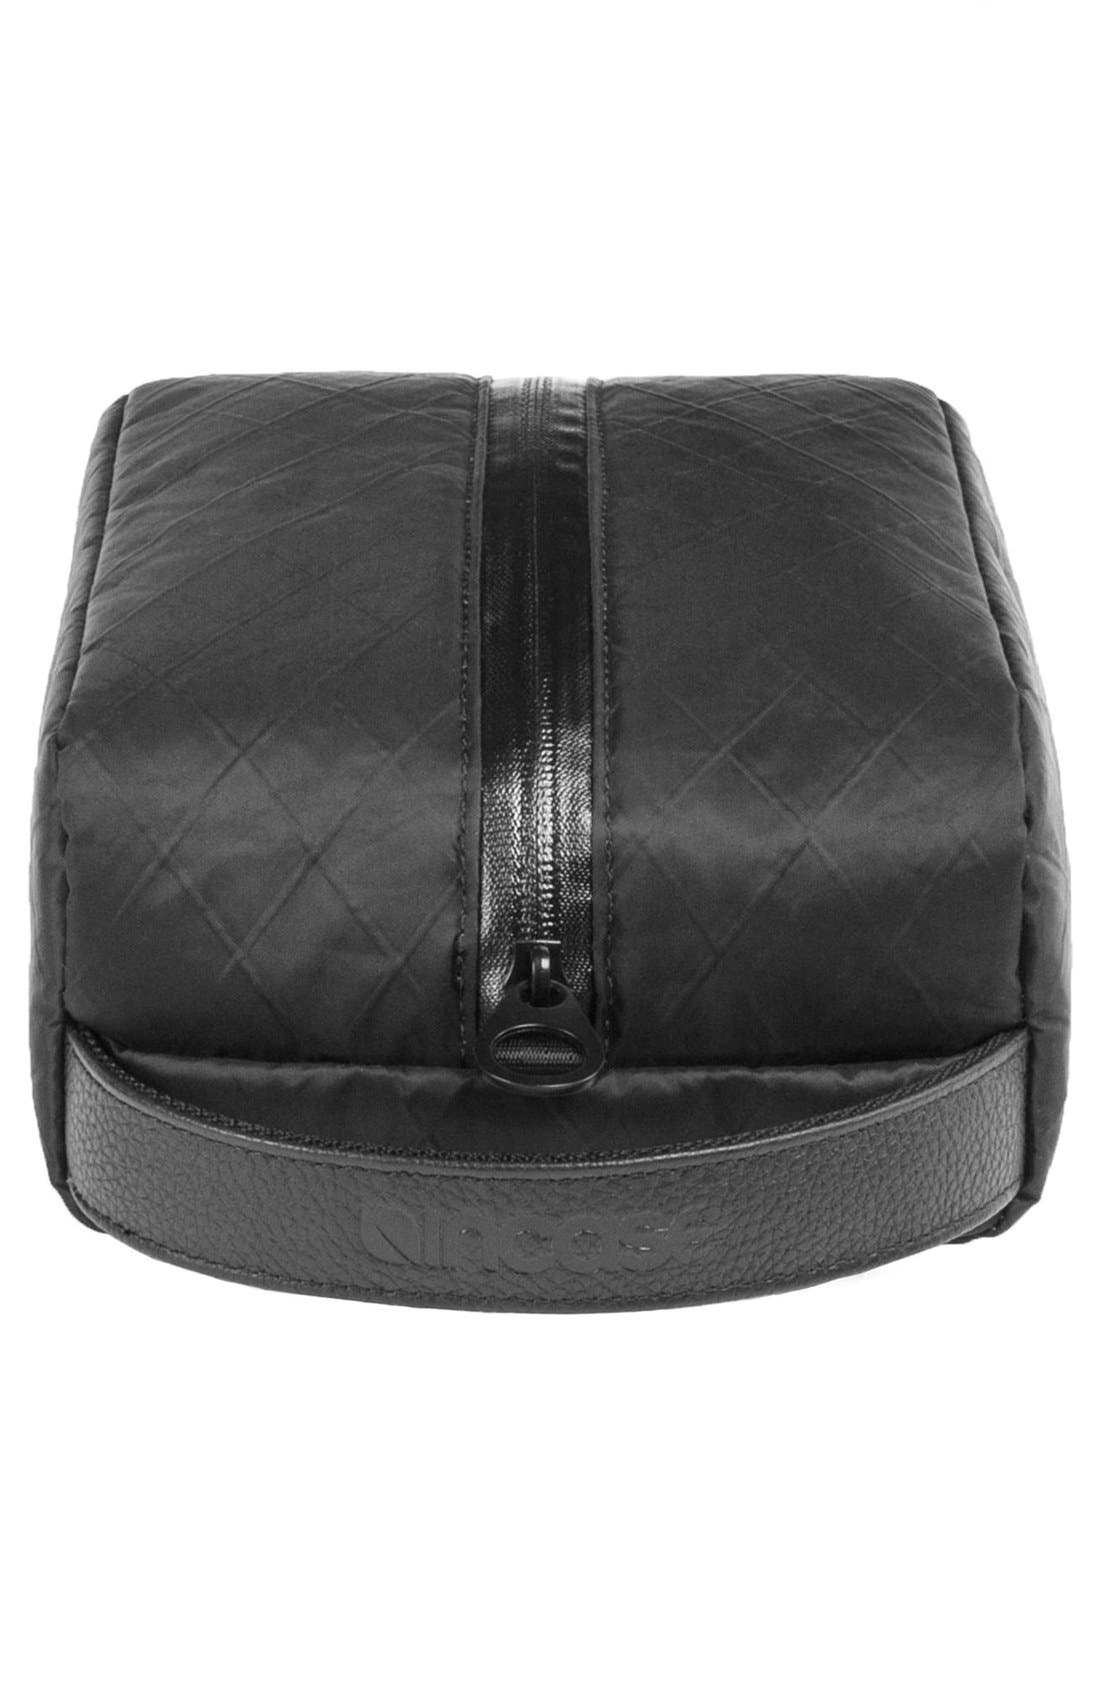 Diamond Wire Dopp Kit,                             Alternate thumbnail 7, color,                             Black